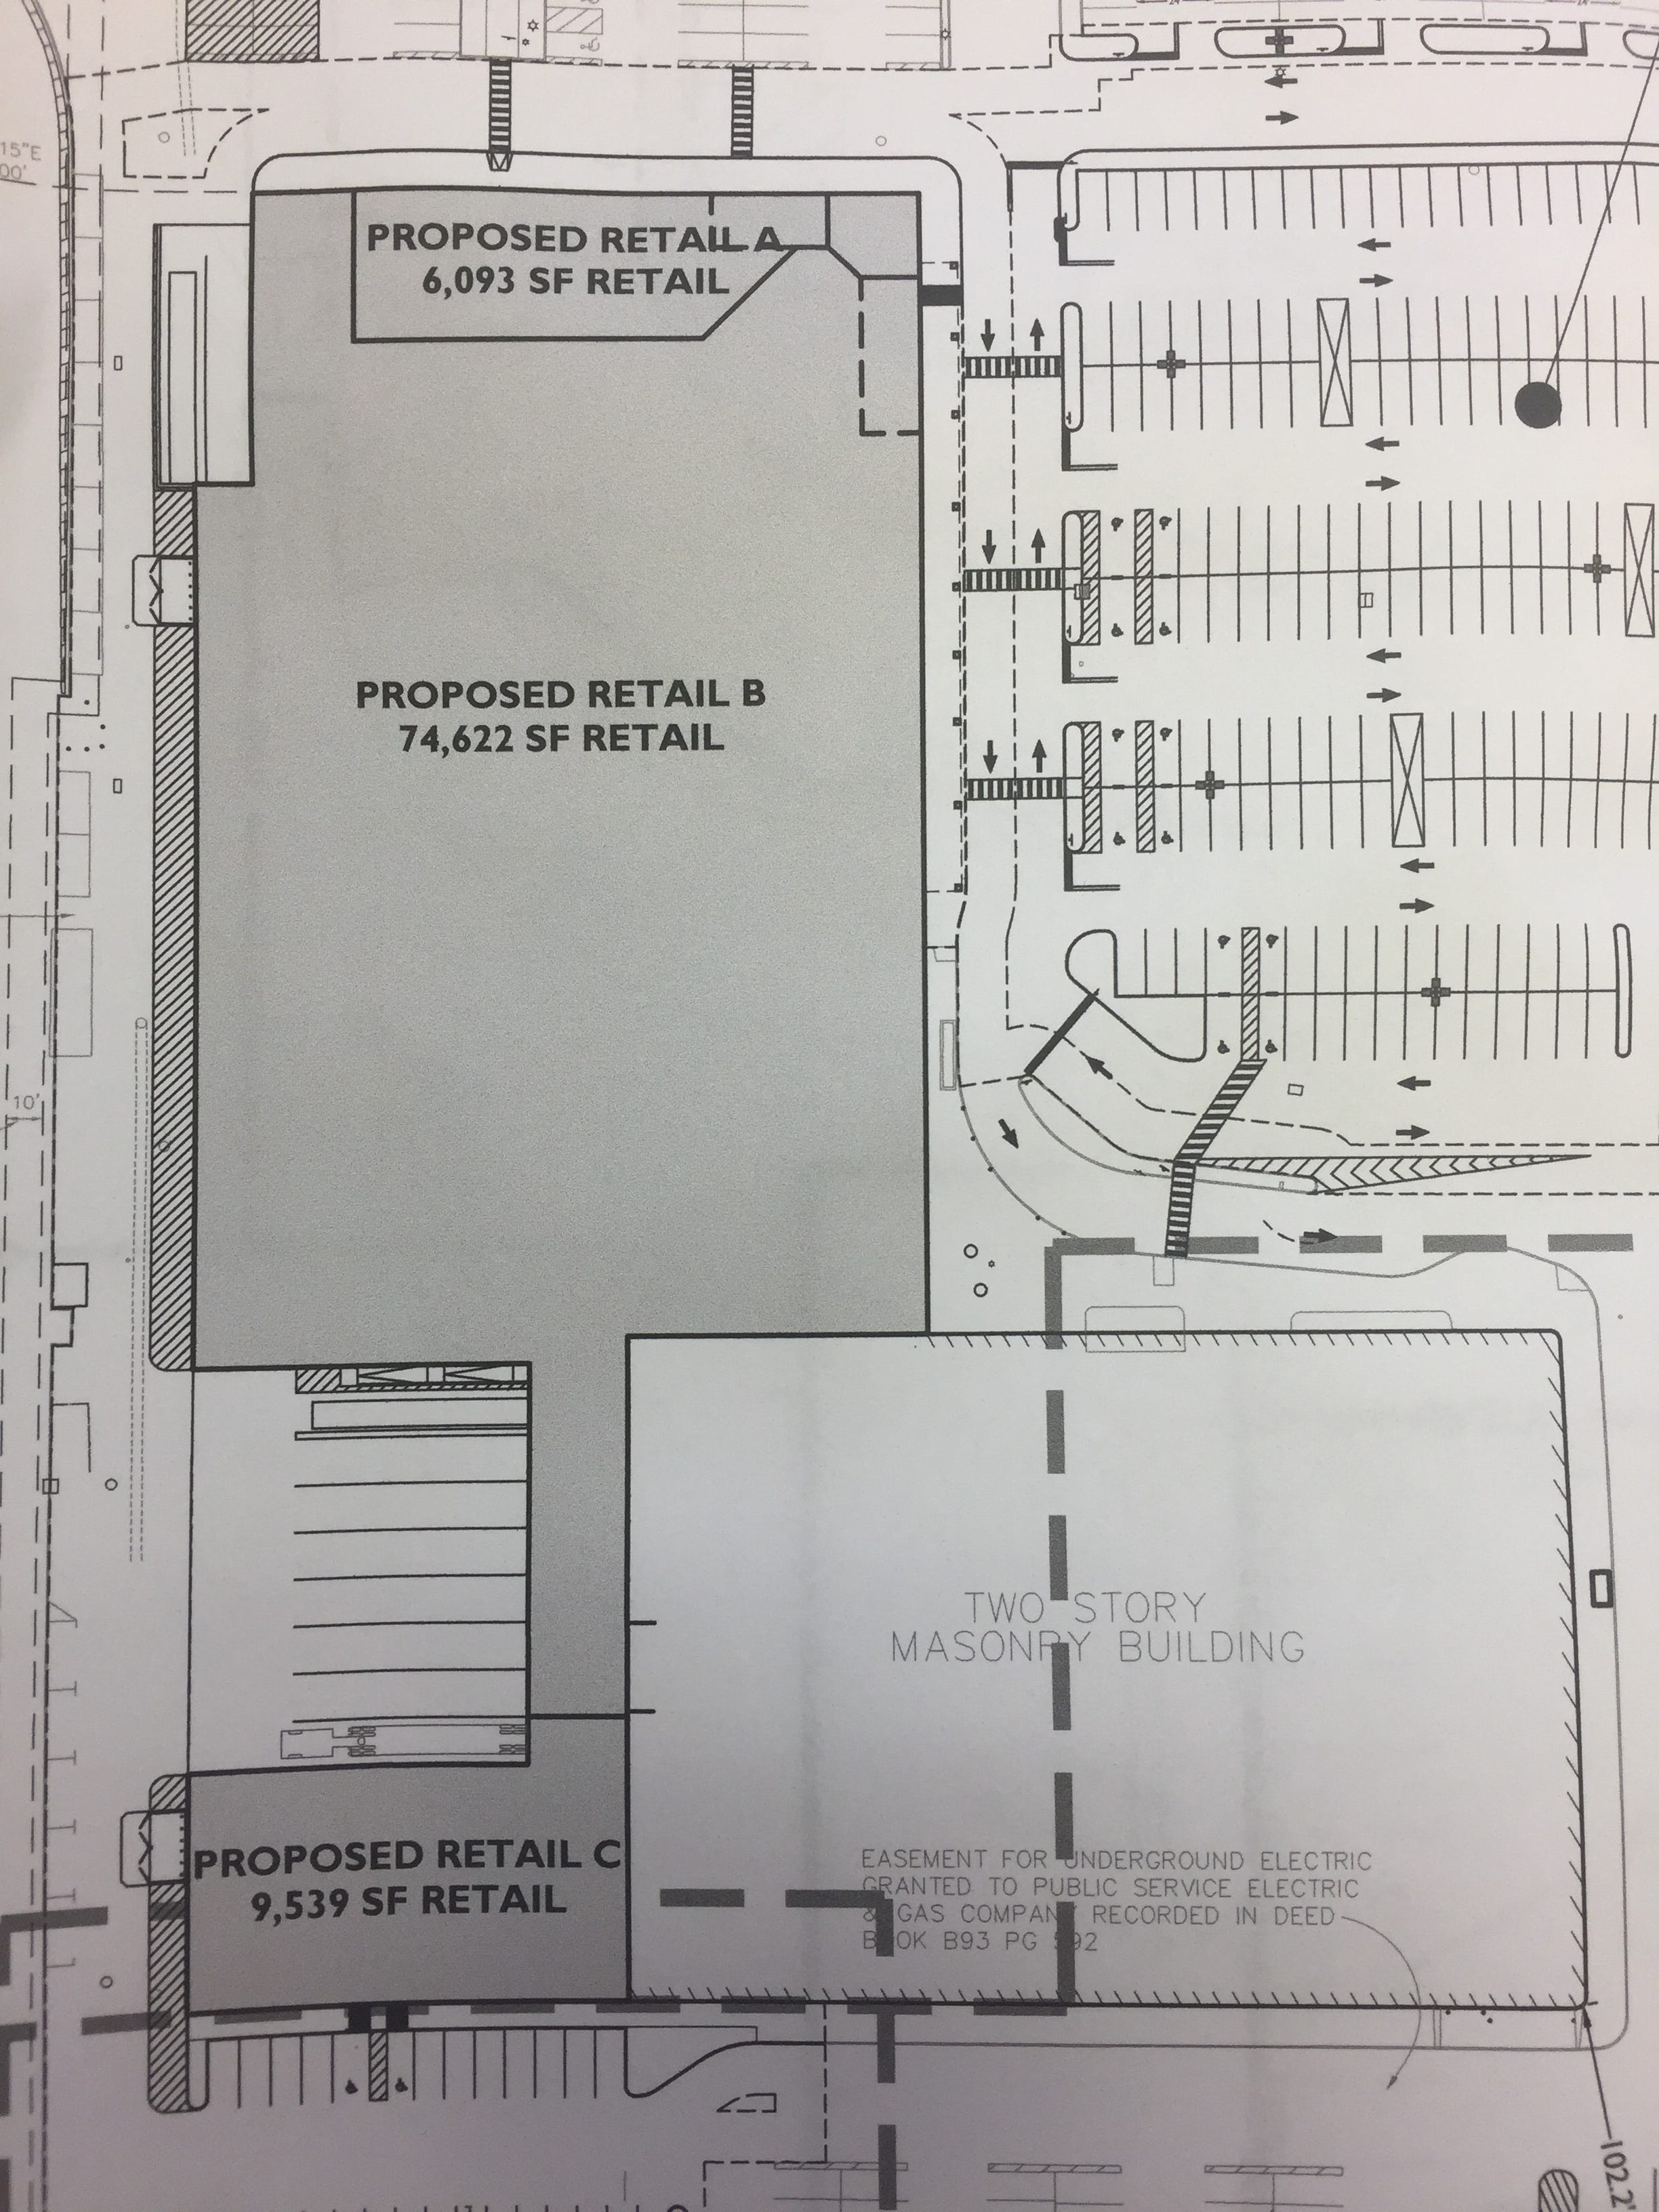 An engineer's drawing shows the dimensions of the future supermarket and adjacent retailers, all of which are shaded.